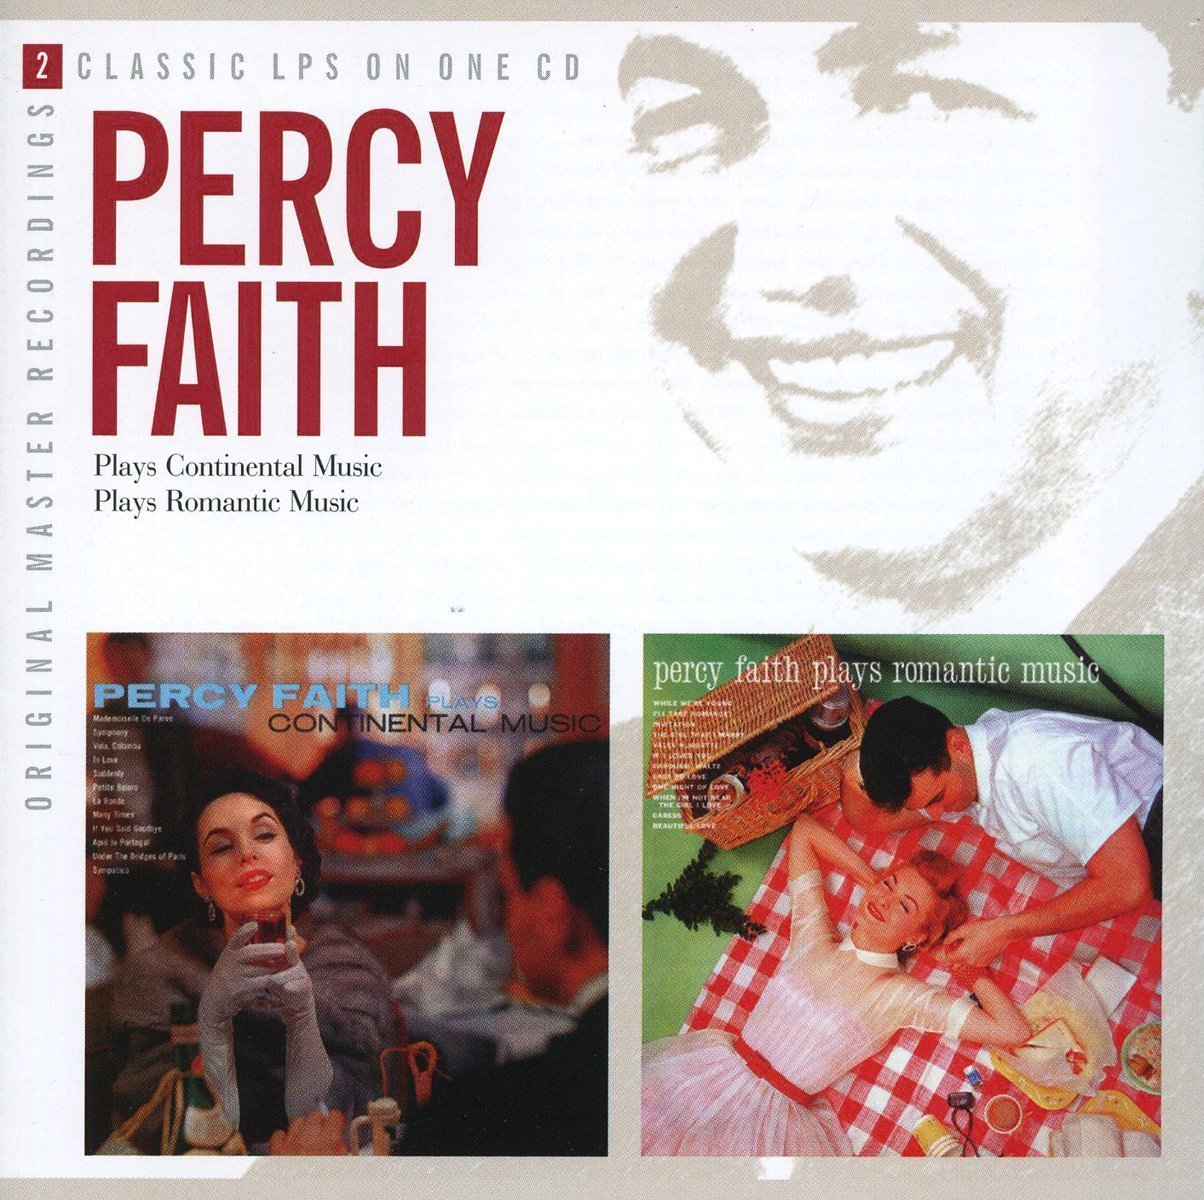 Percy Faith Plays Continental Music / Percy Faith Plays Romantic Music by Taragon